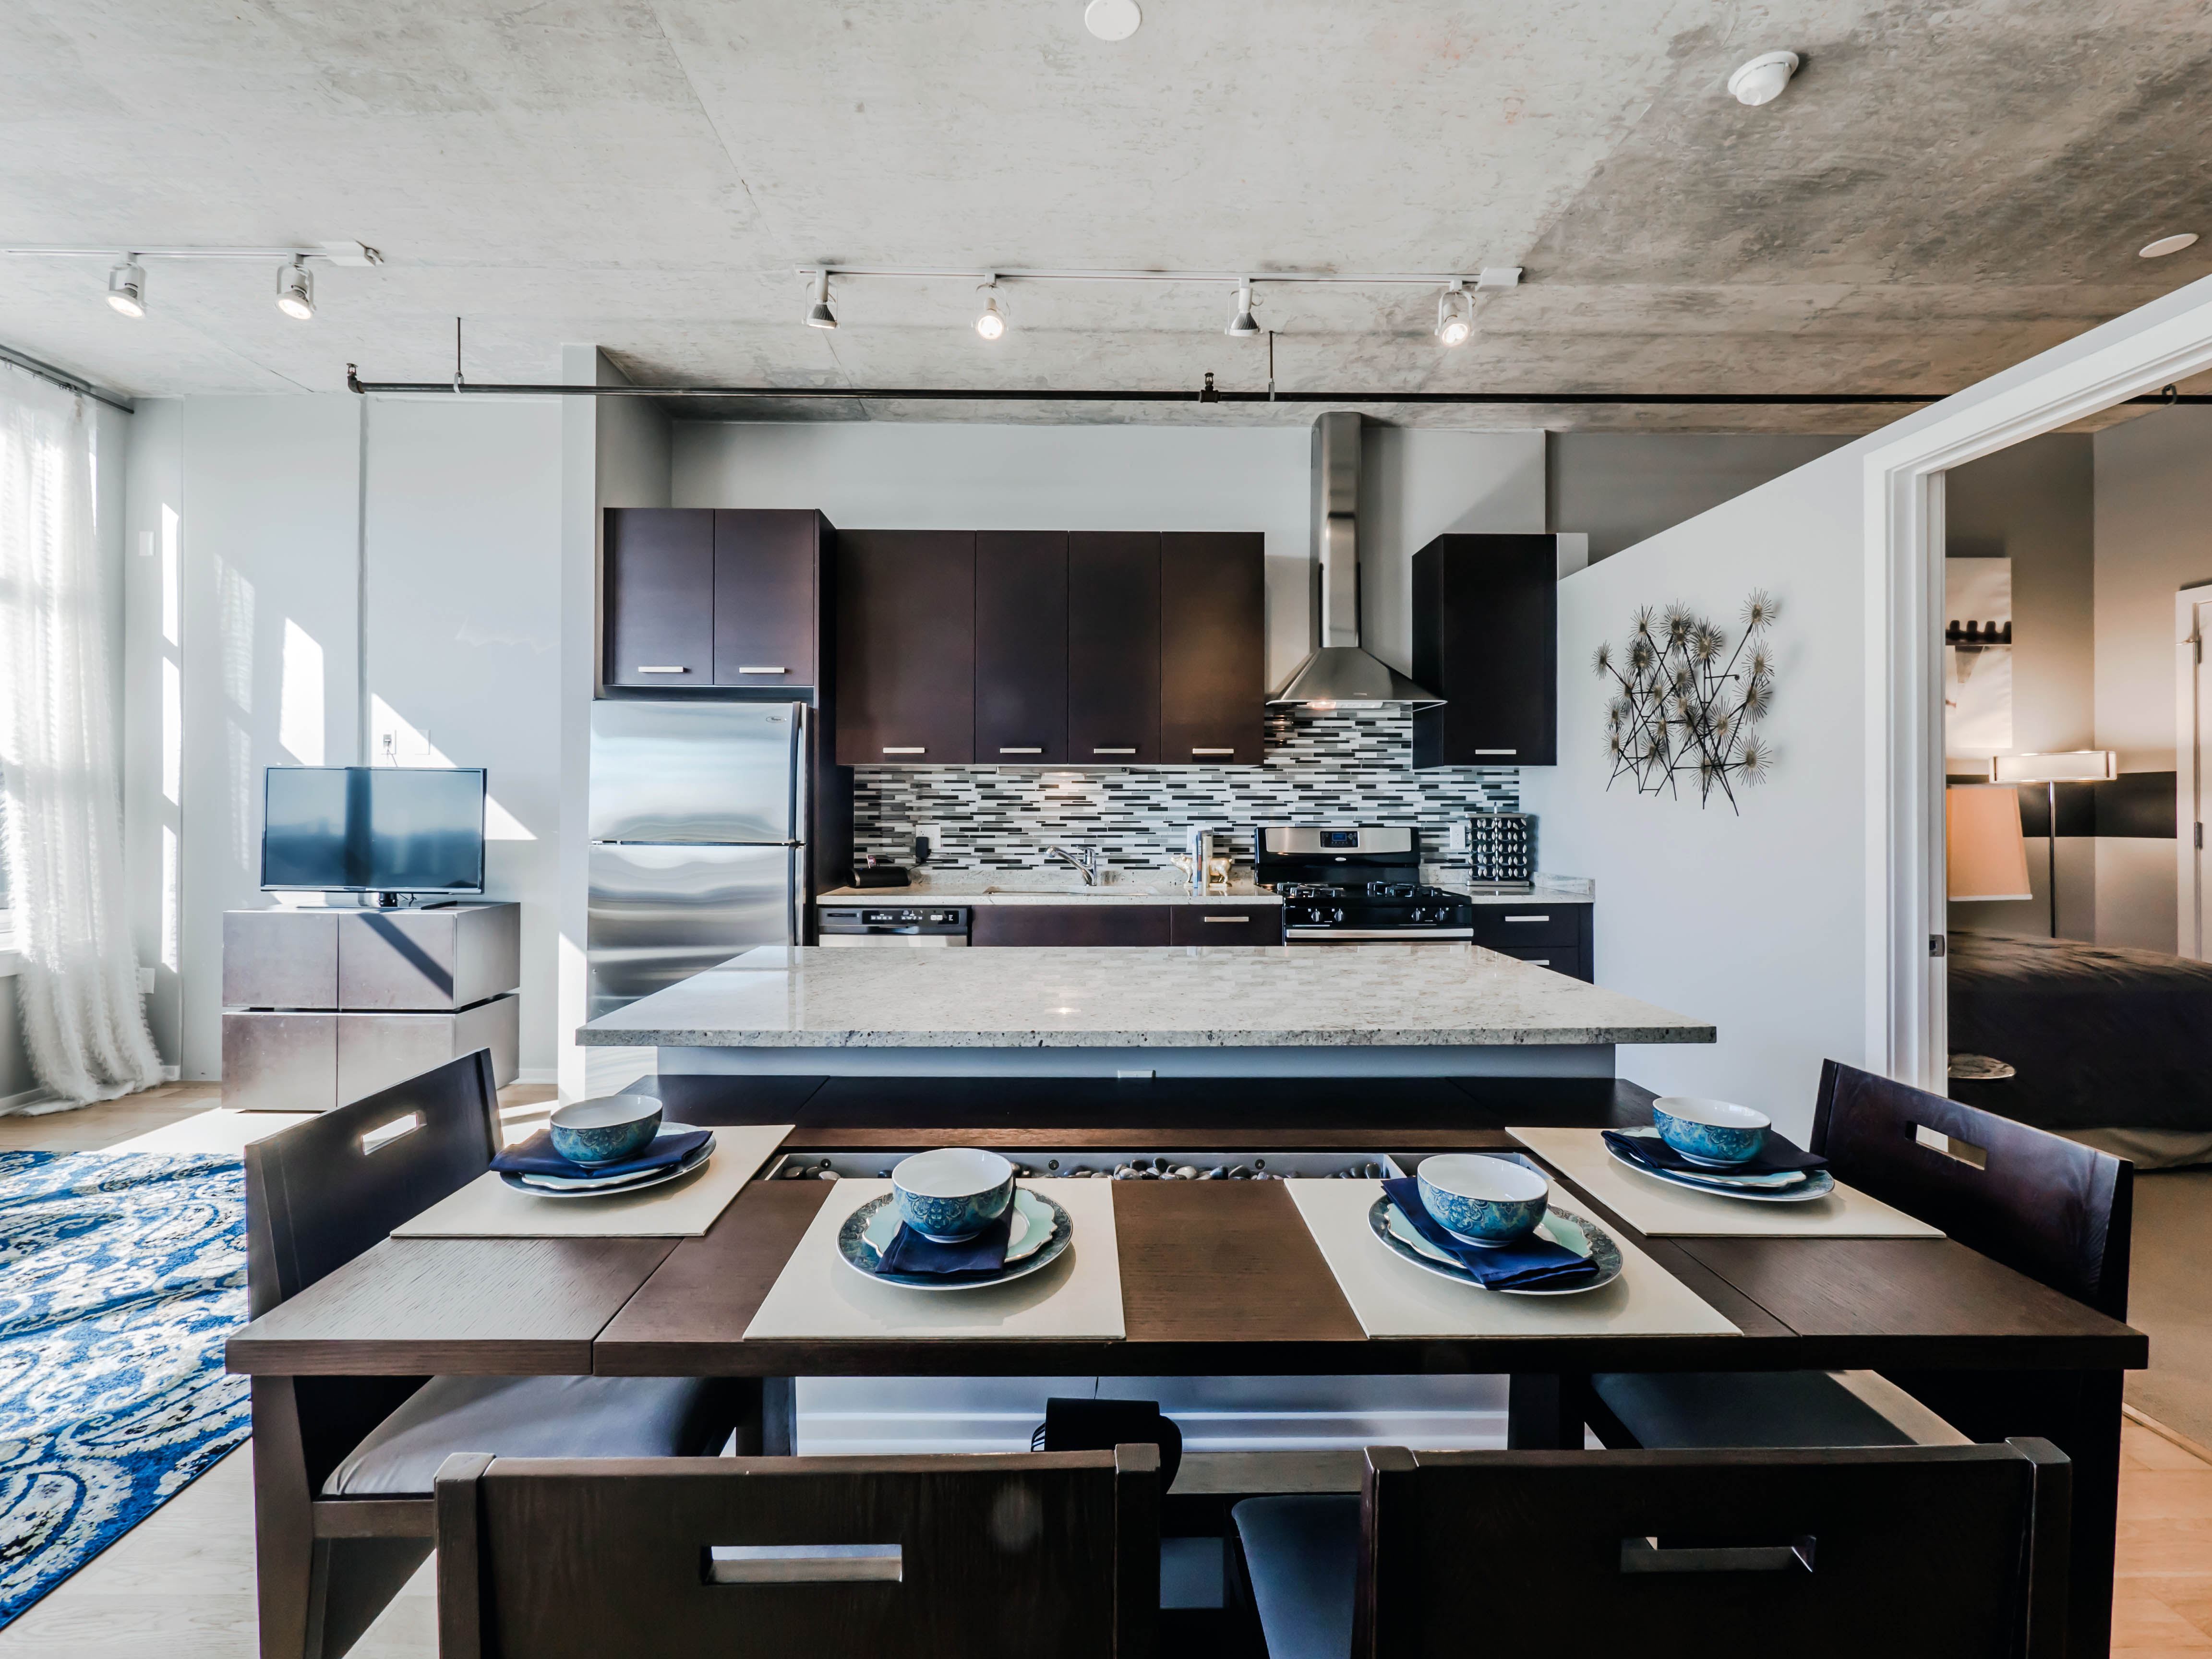 2 Story Aesthetic Apartment - 303218_Good 2 Story Aesthetic Apartment - 303218  Picture_988235.jpg